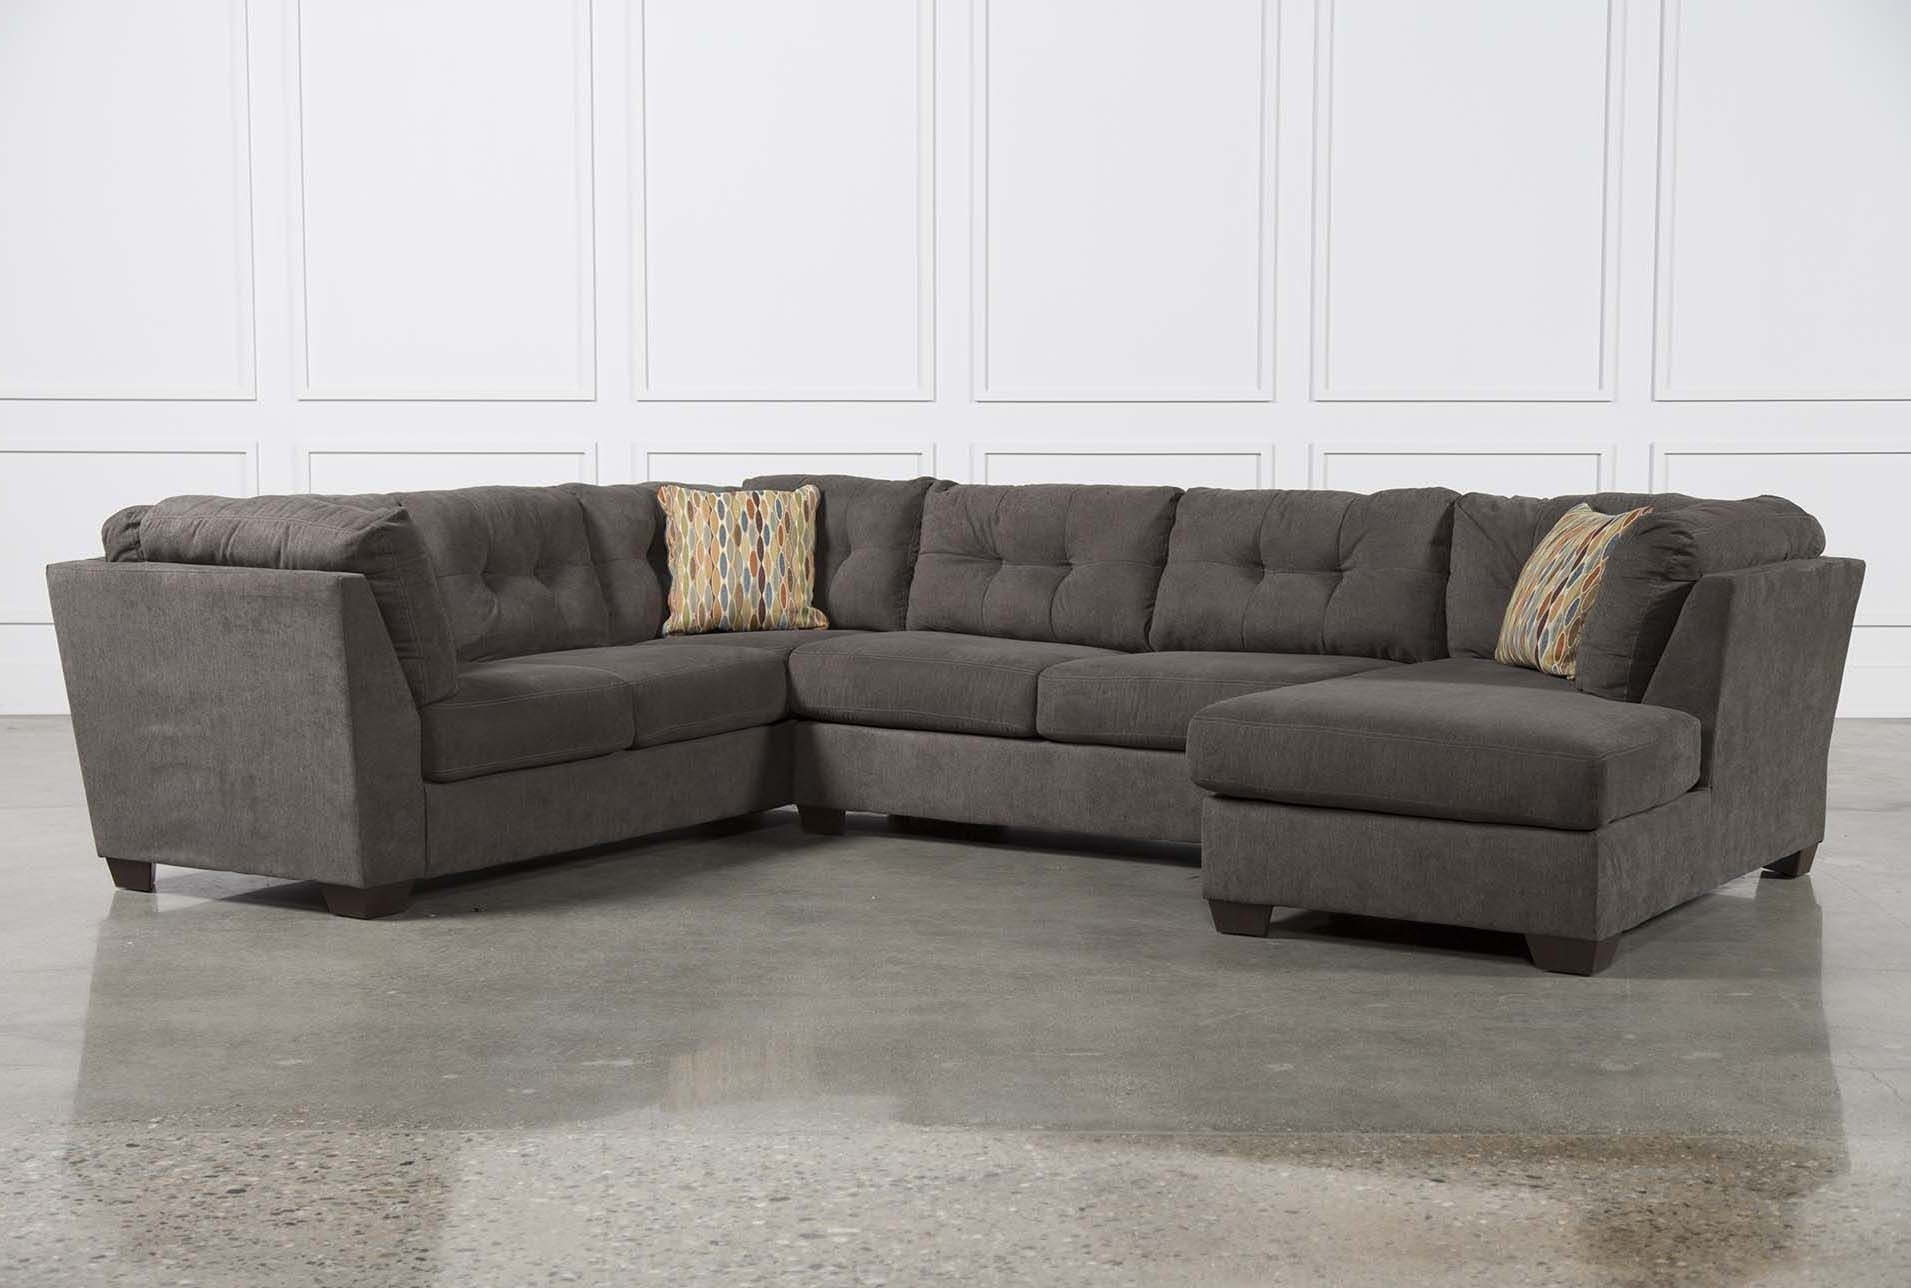 Norfolk Grey 3 Piece Sectional W/laf Chaise With Regard To Norfolk Grey 3 Piece Sectionals With Laf Chaise (Image 16 of 25)